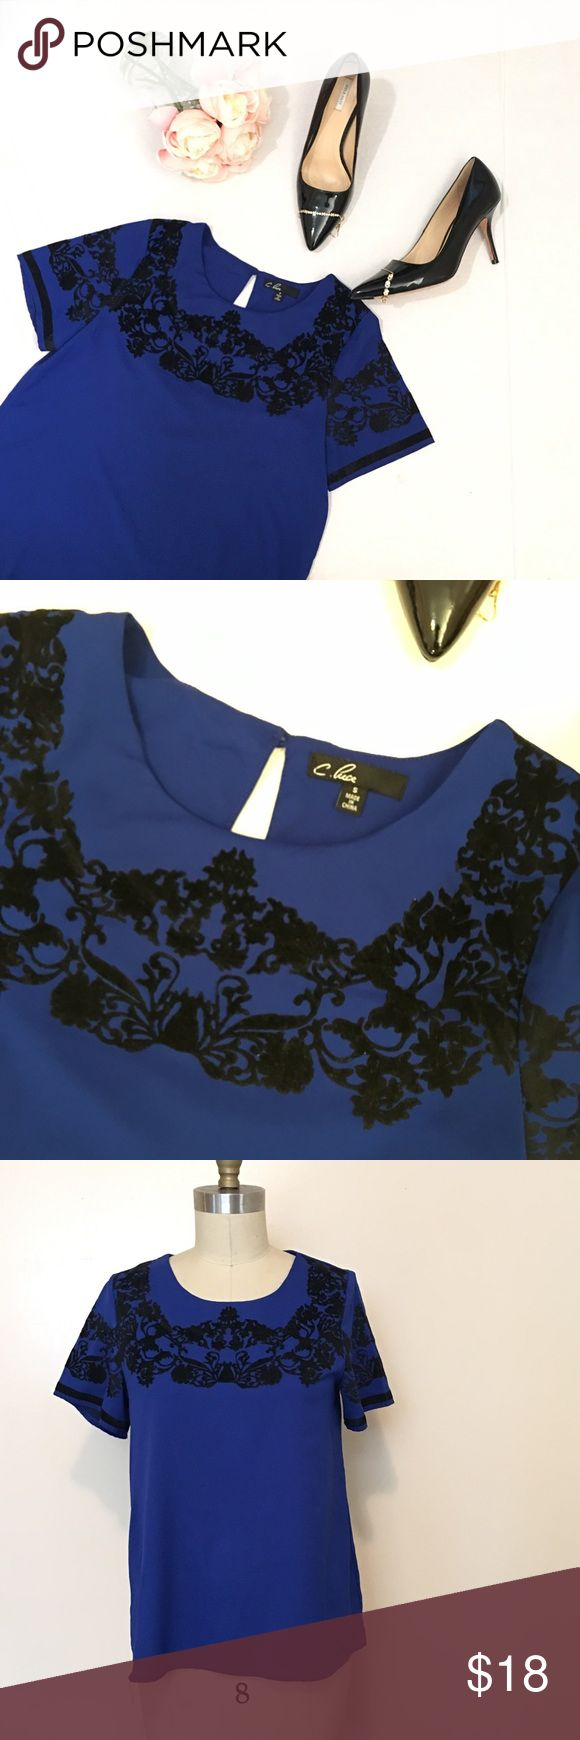 C.luce colbolt blue with black top Sz S Great condition. Top is super cute!!! c. luce Tops Blouses